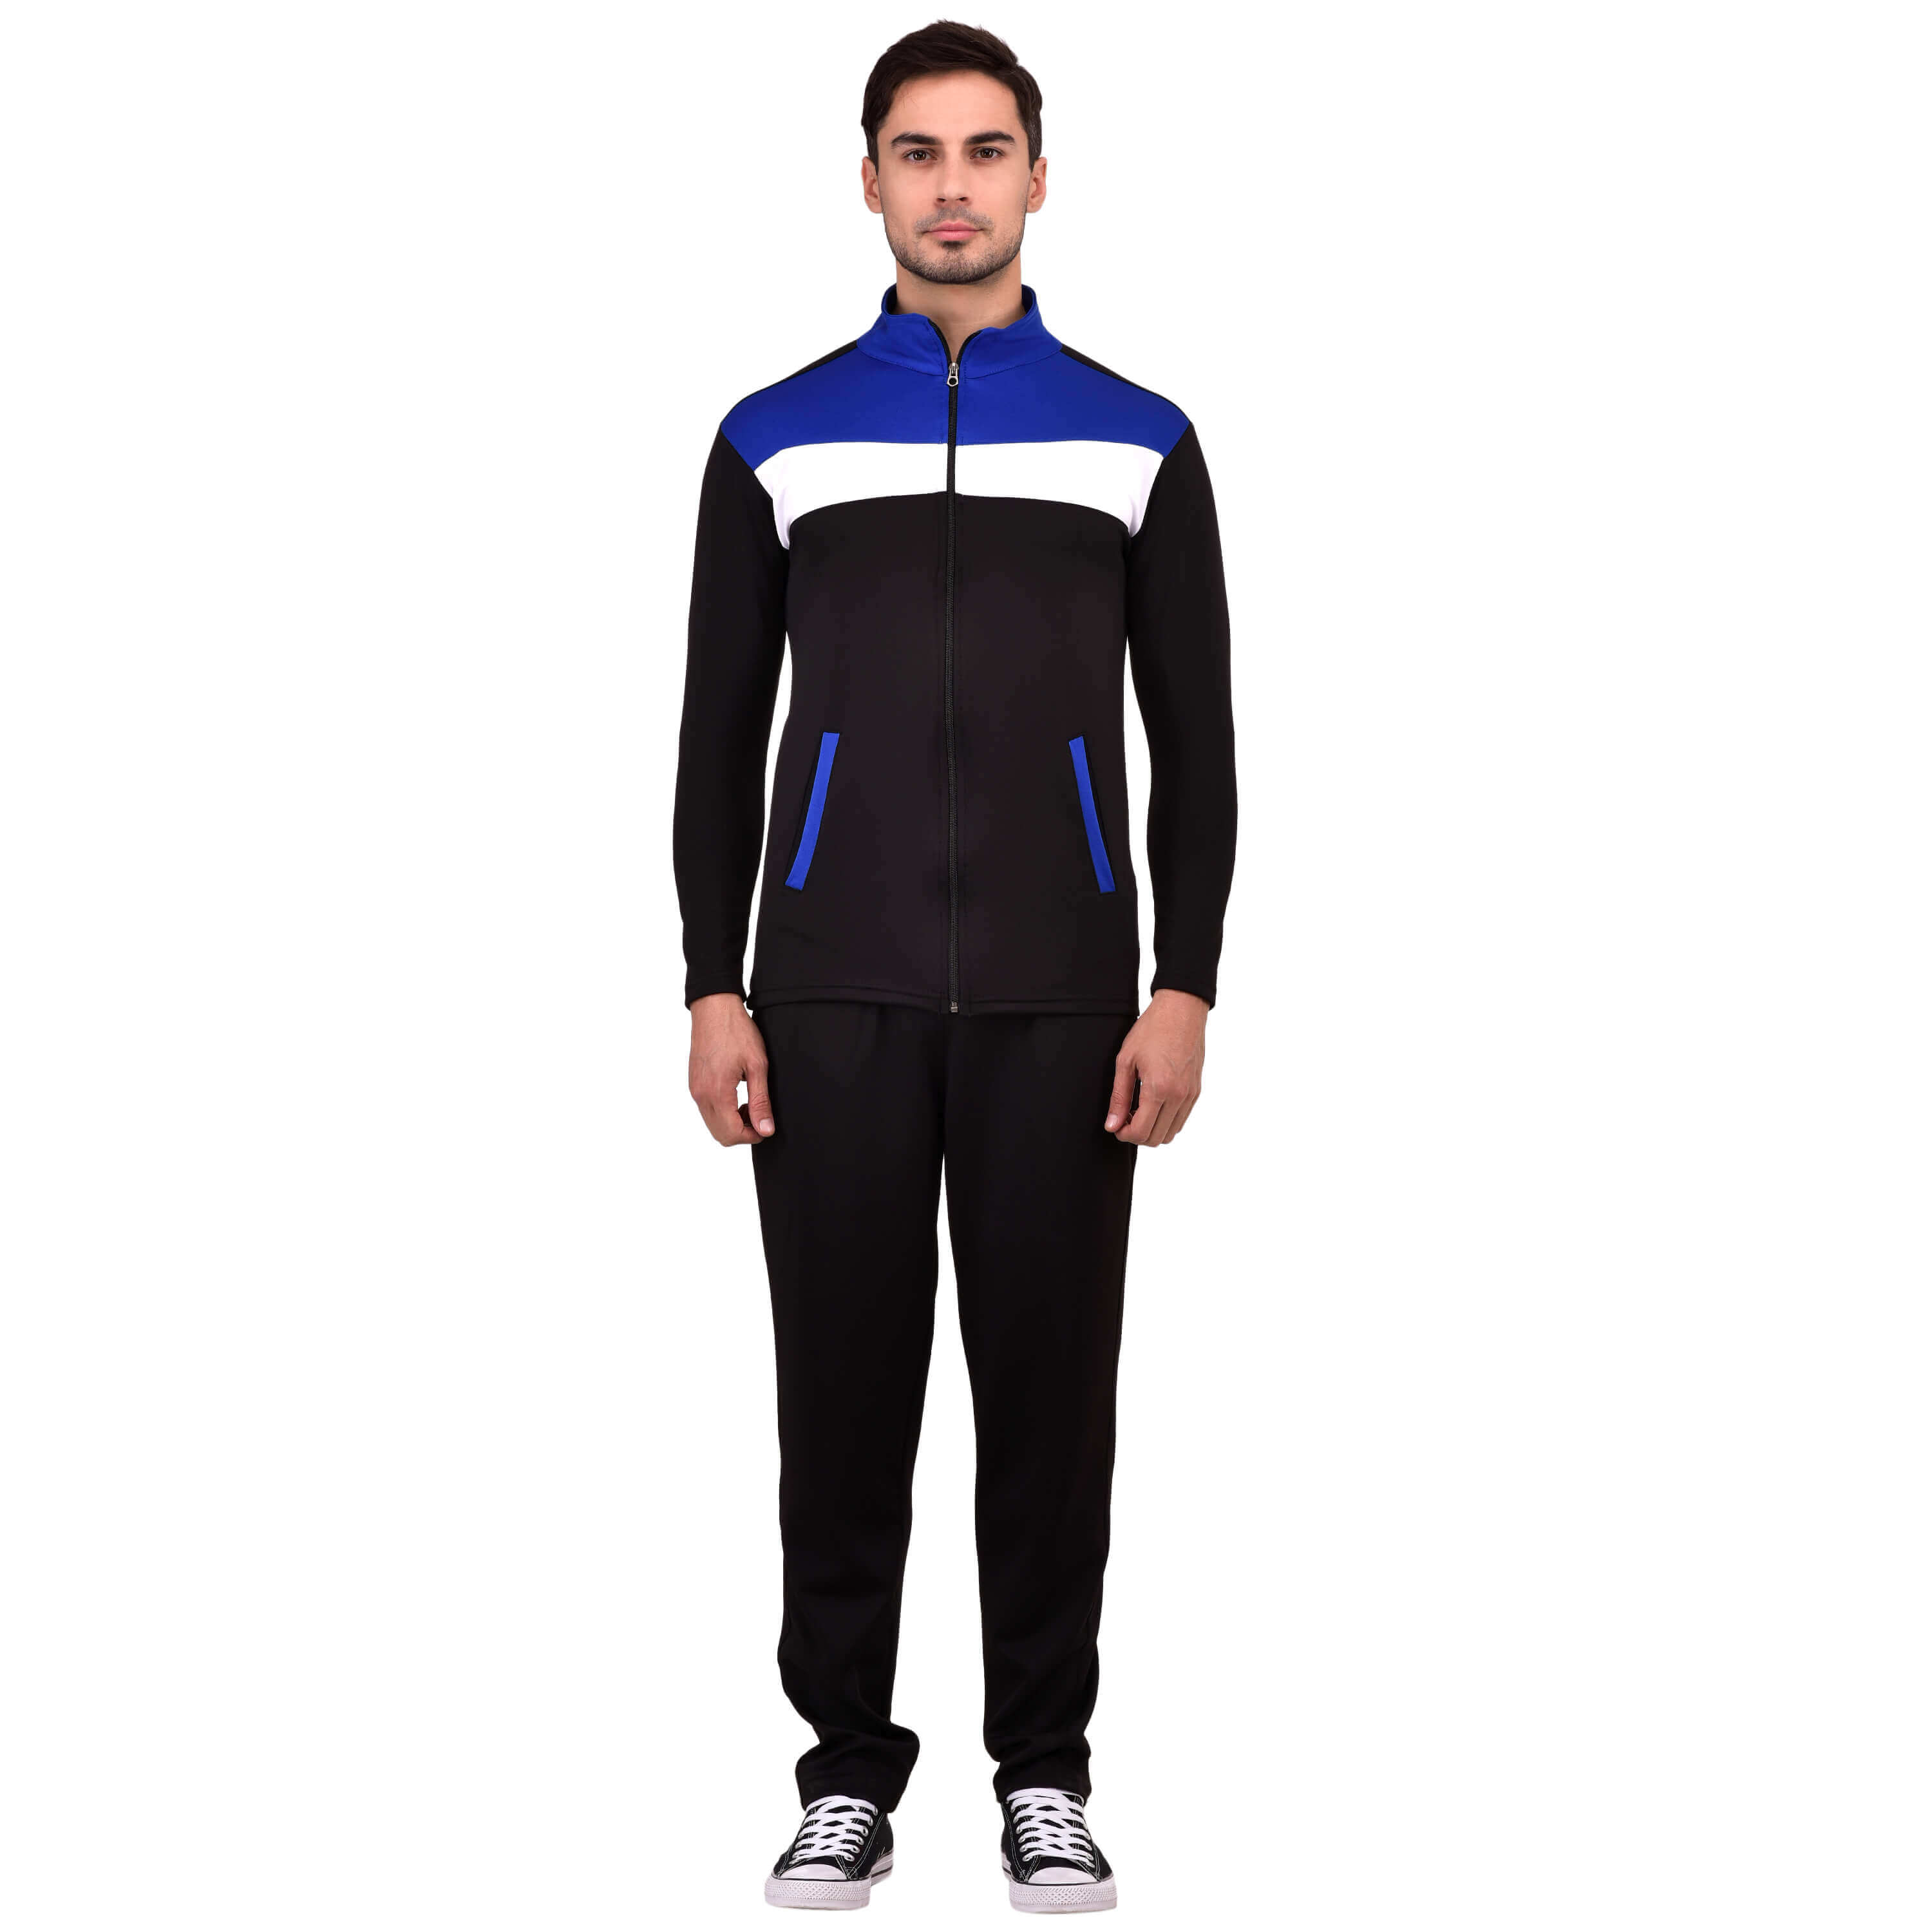 Black Tracksuit Manufacturers in Noida